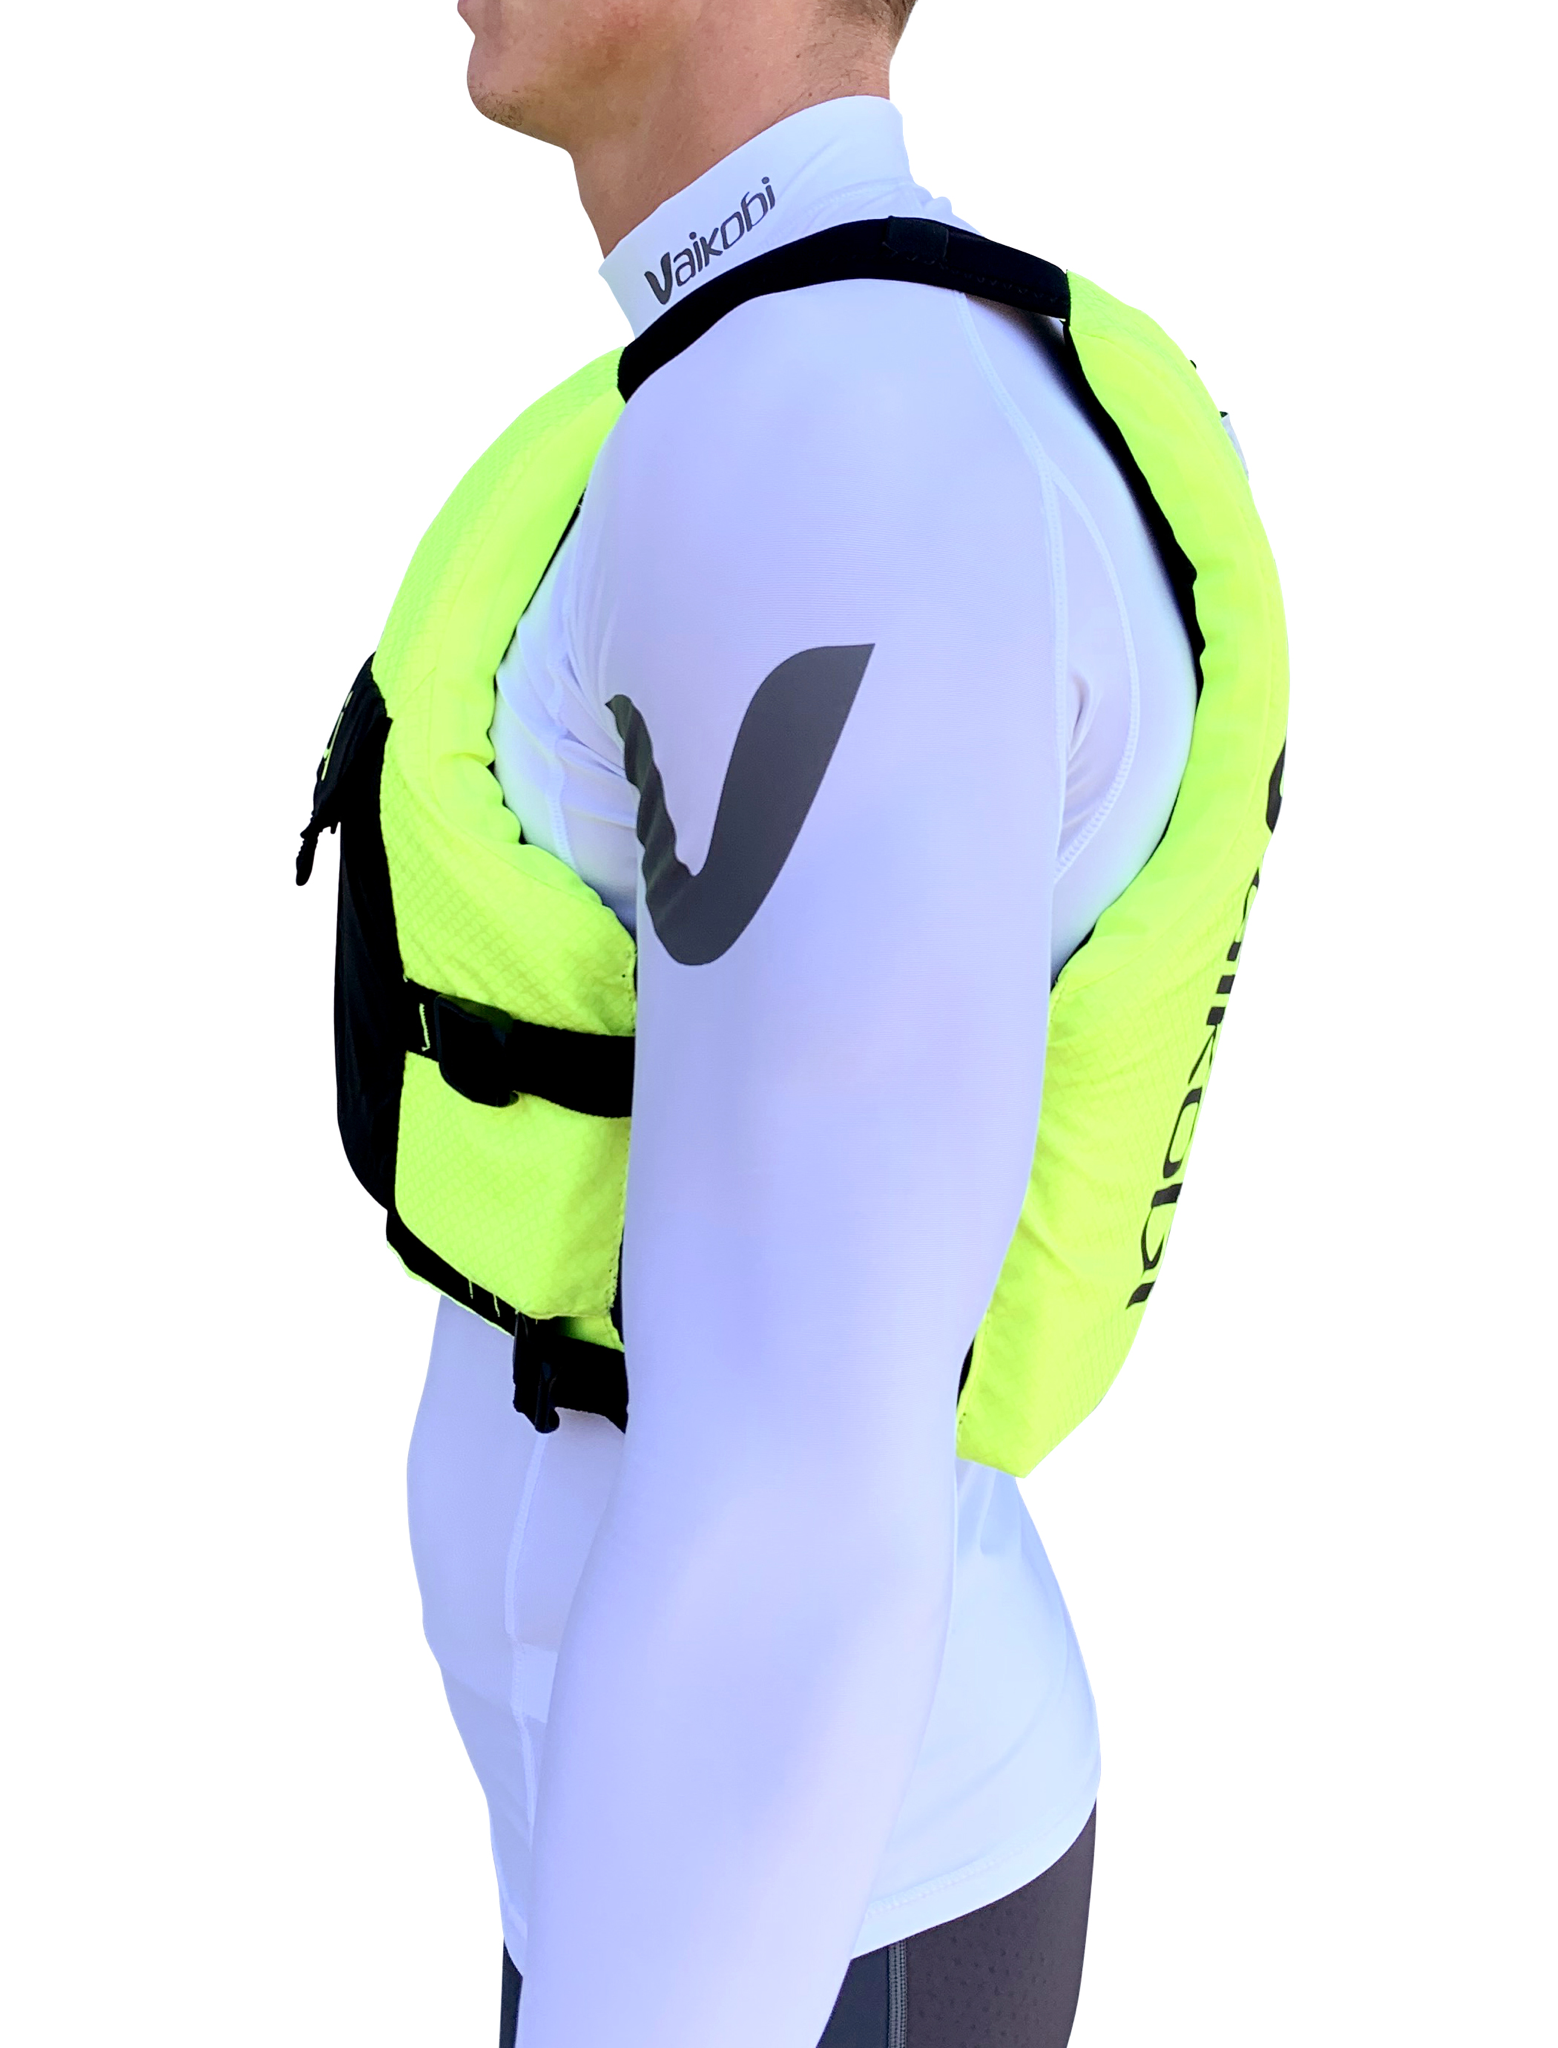 Vaikobi VXP Race PFD - Fluro Yellow/Black